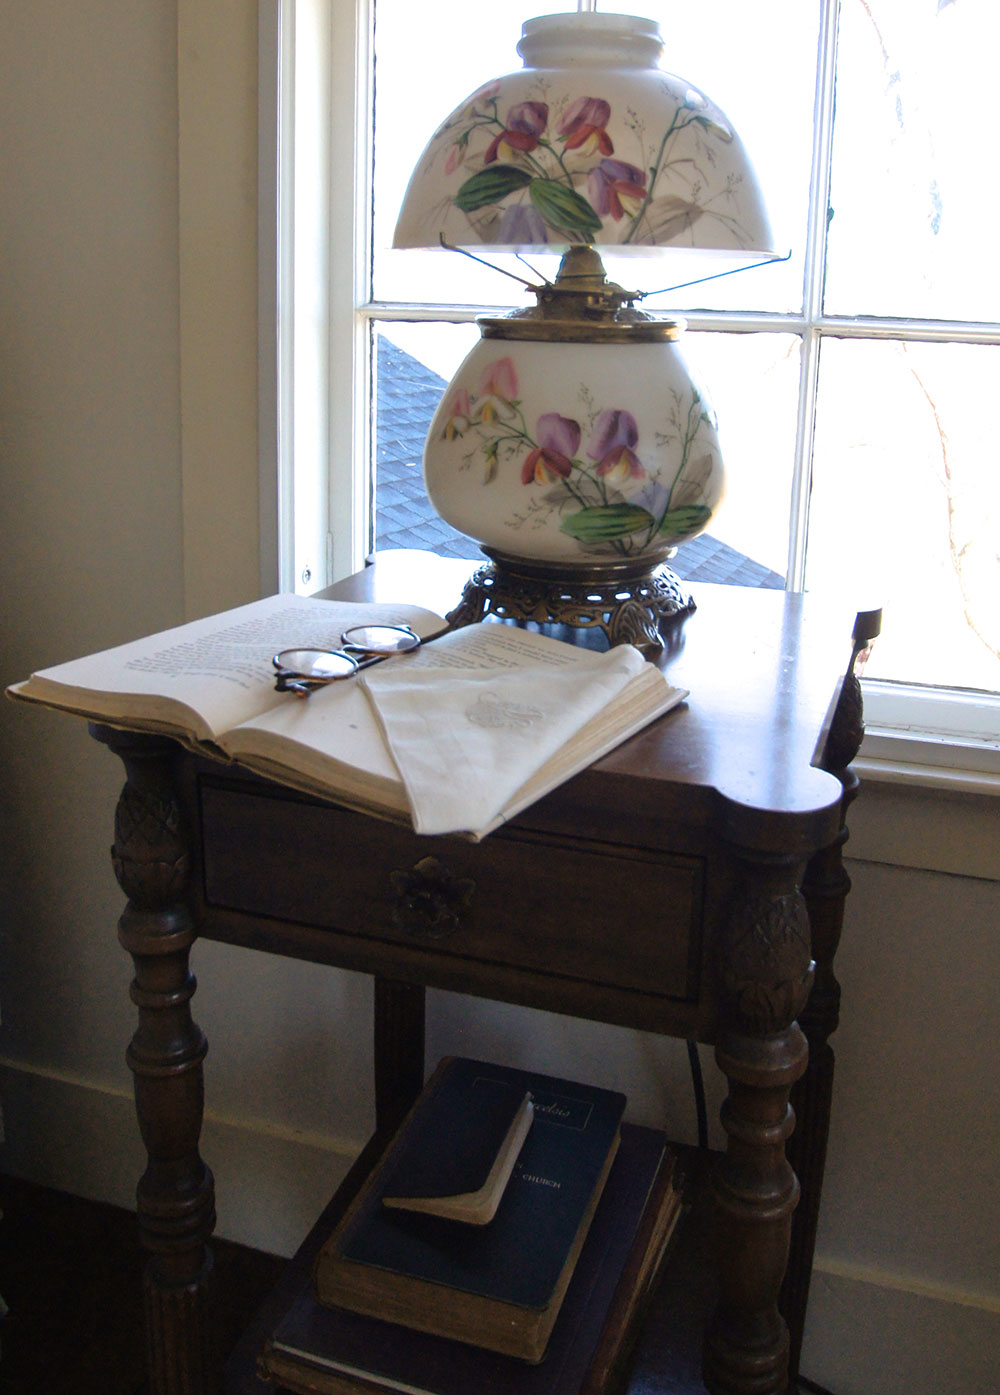 Old glass kerosene lamp on a small table. (photo courtesy Judy Weaver)